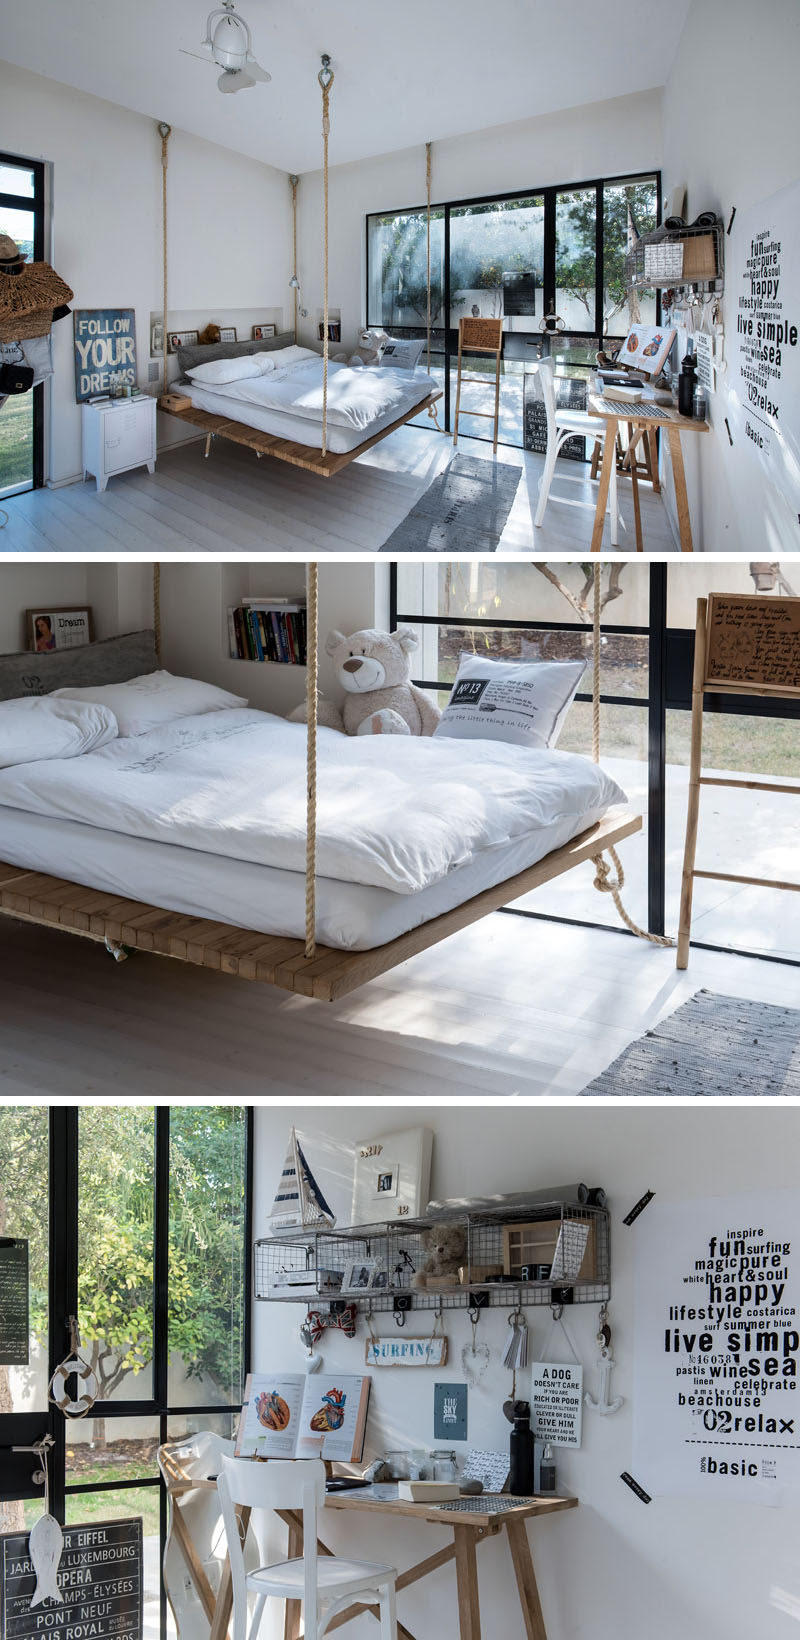 This teenager's bedrooms has a bed that is suspended from the ceiling using heavy duty rope and fixtures.